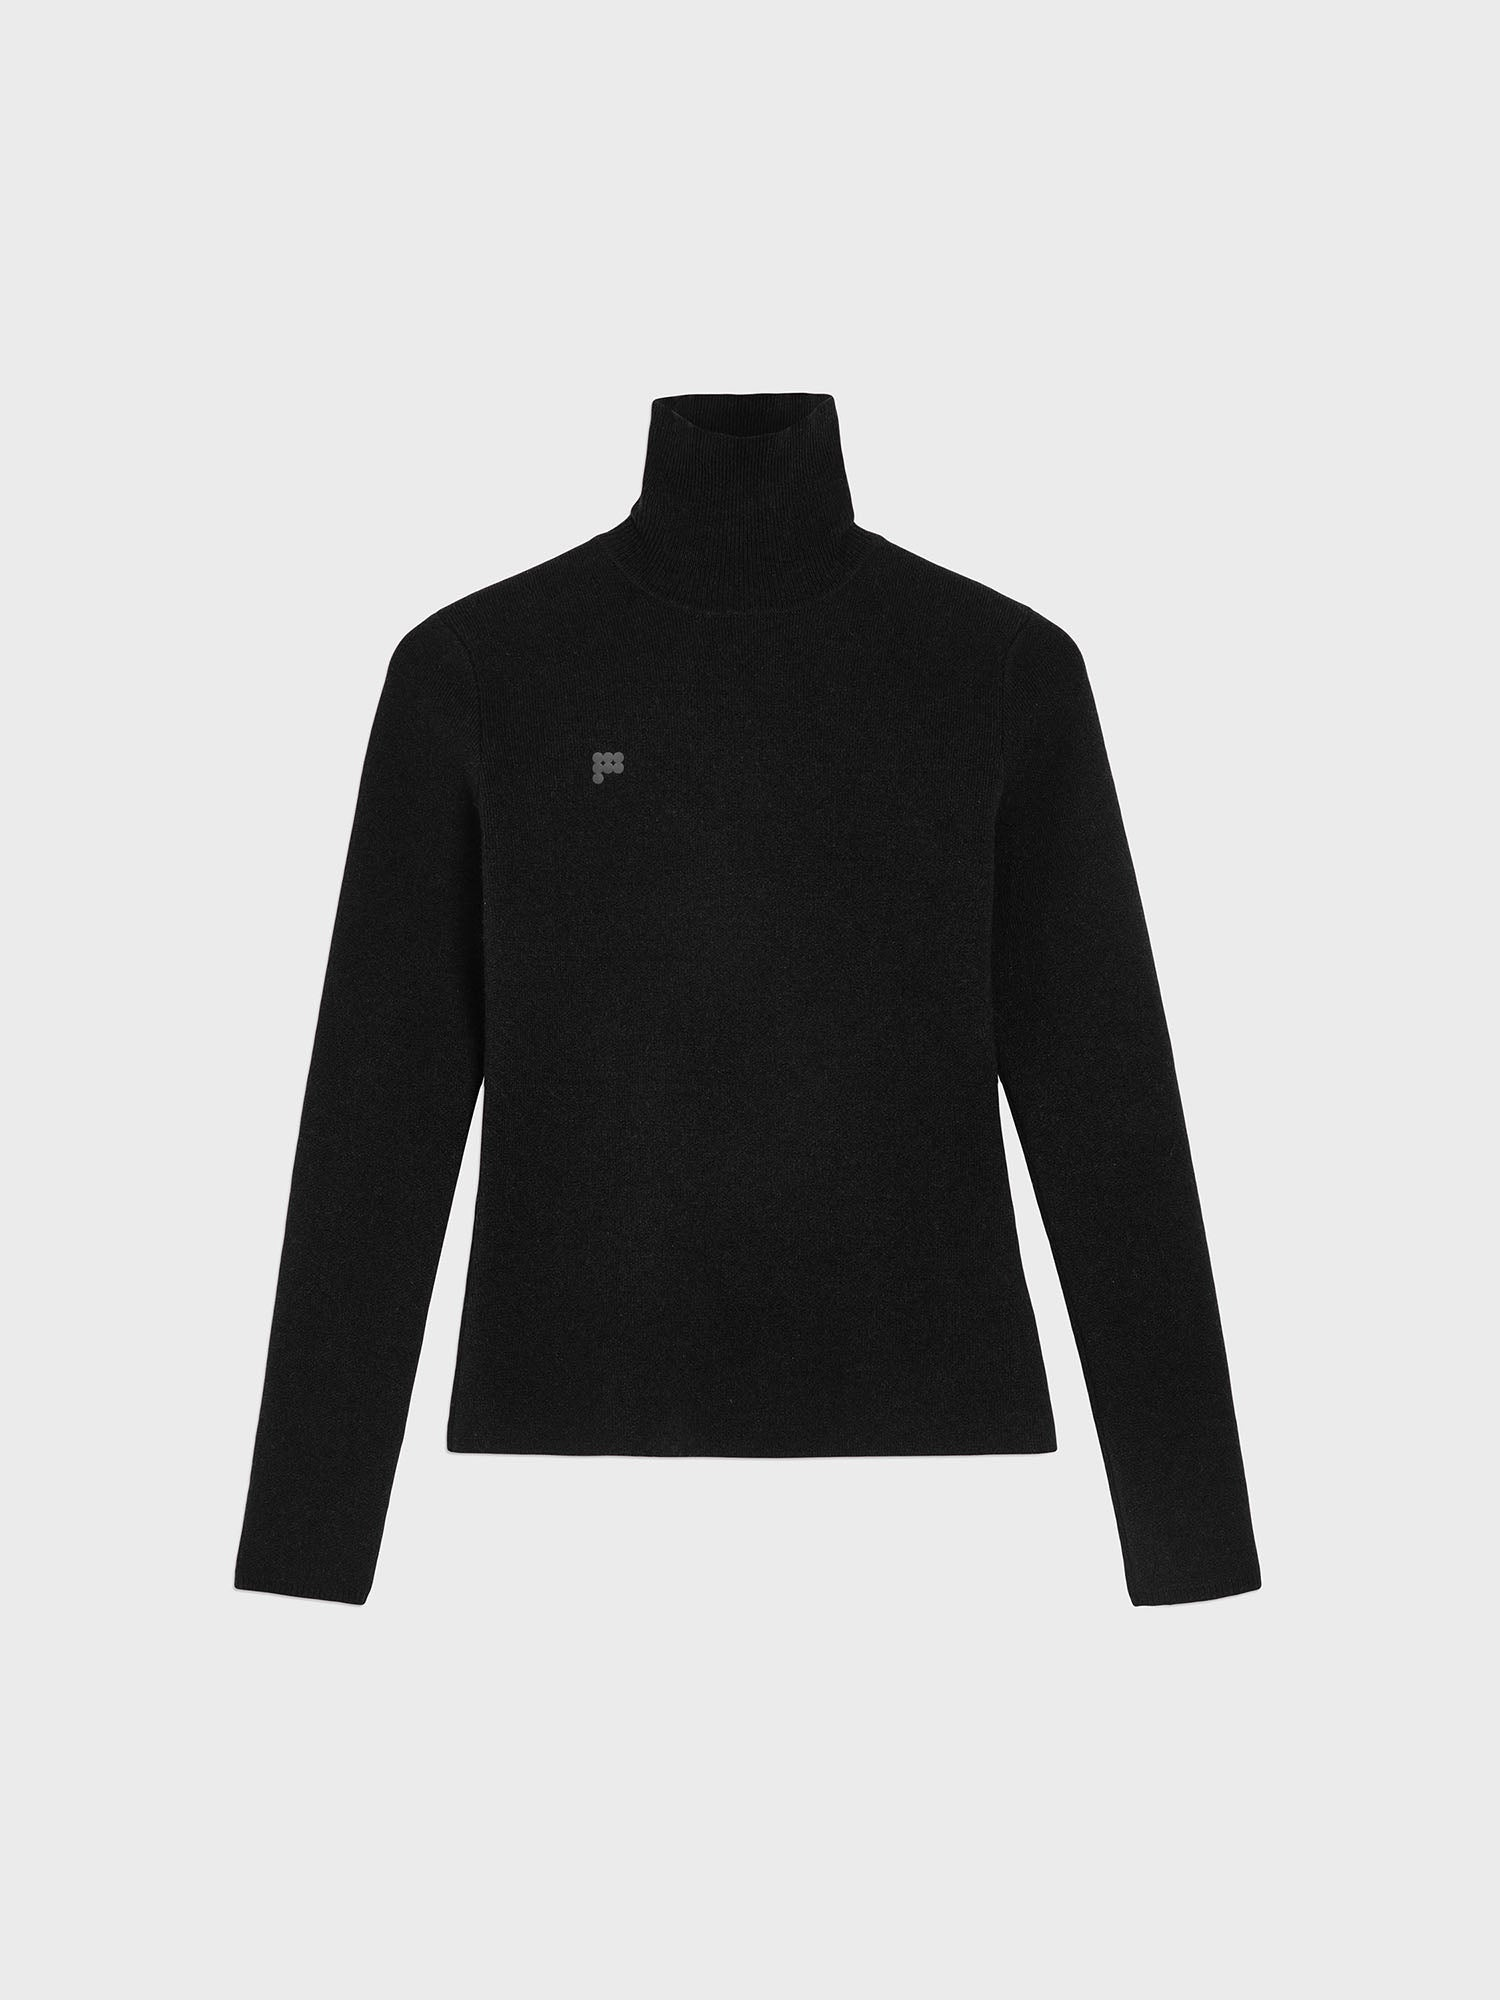 Women's Recycled Cashmere Fitted Turtleneck